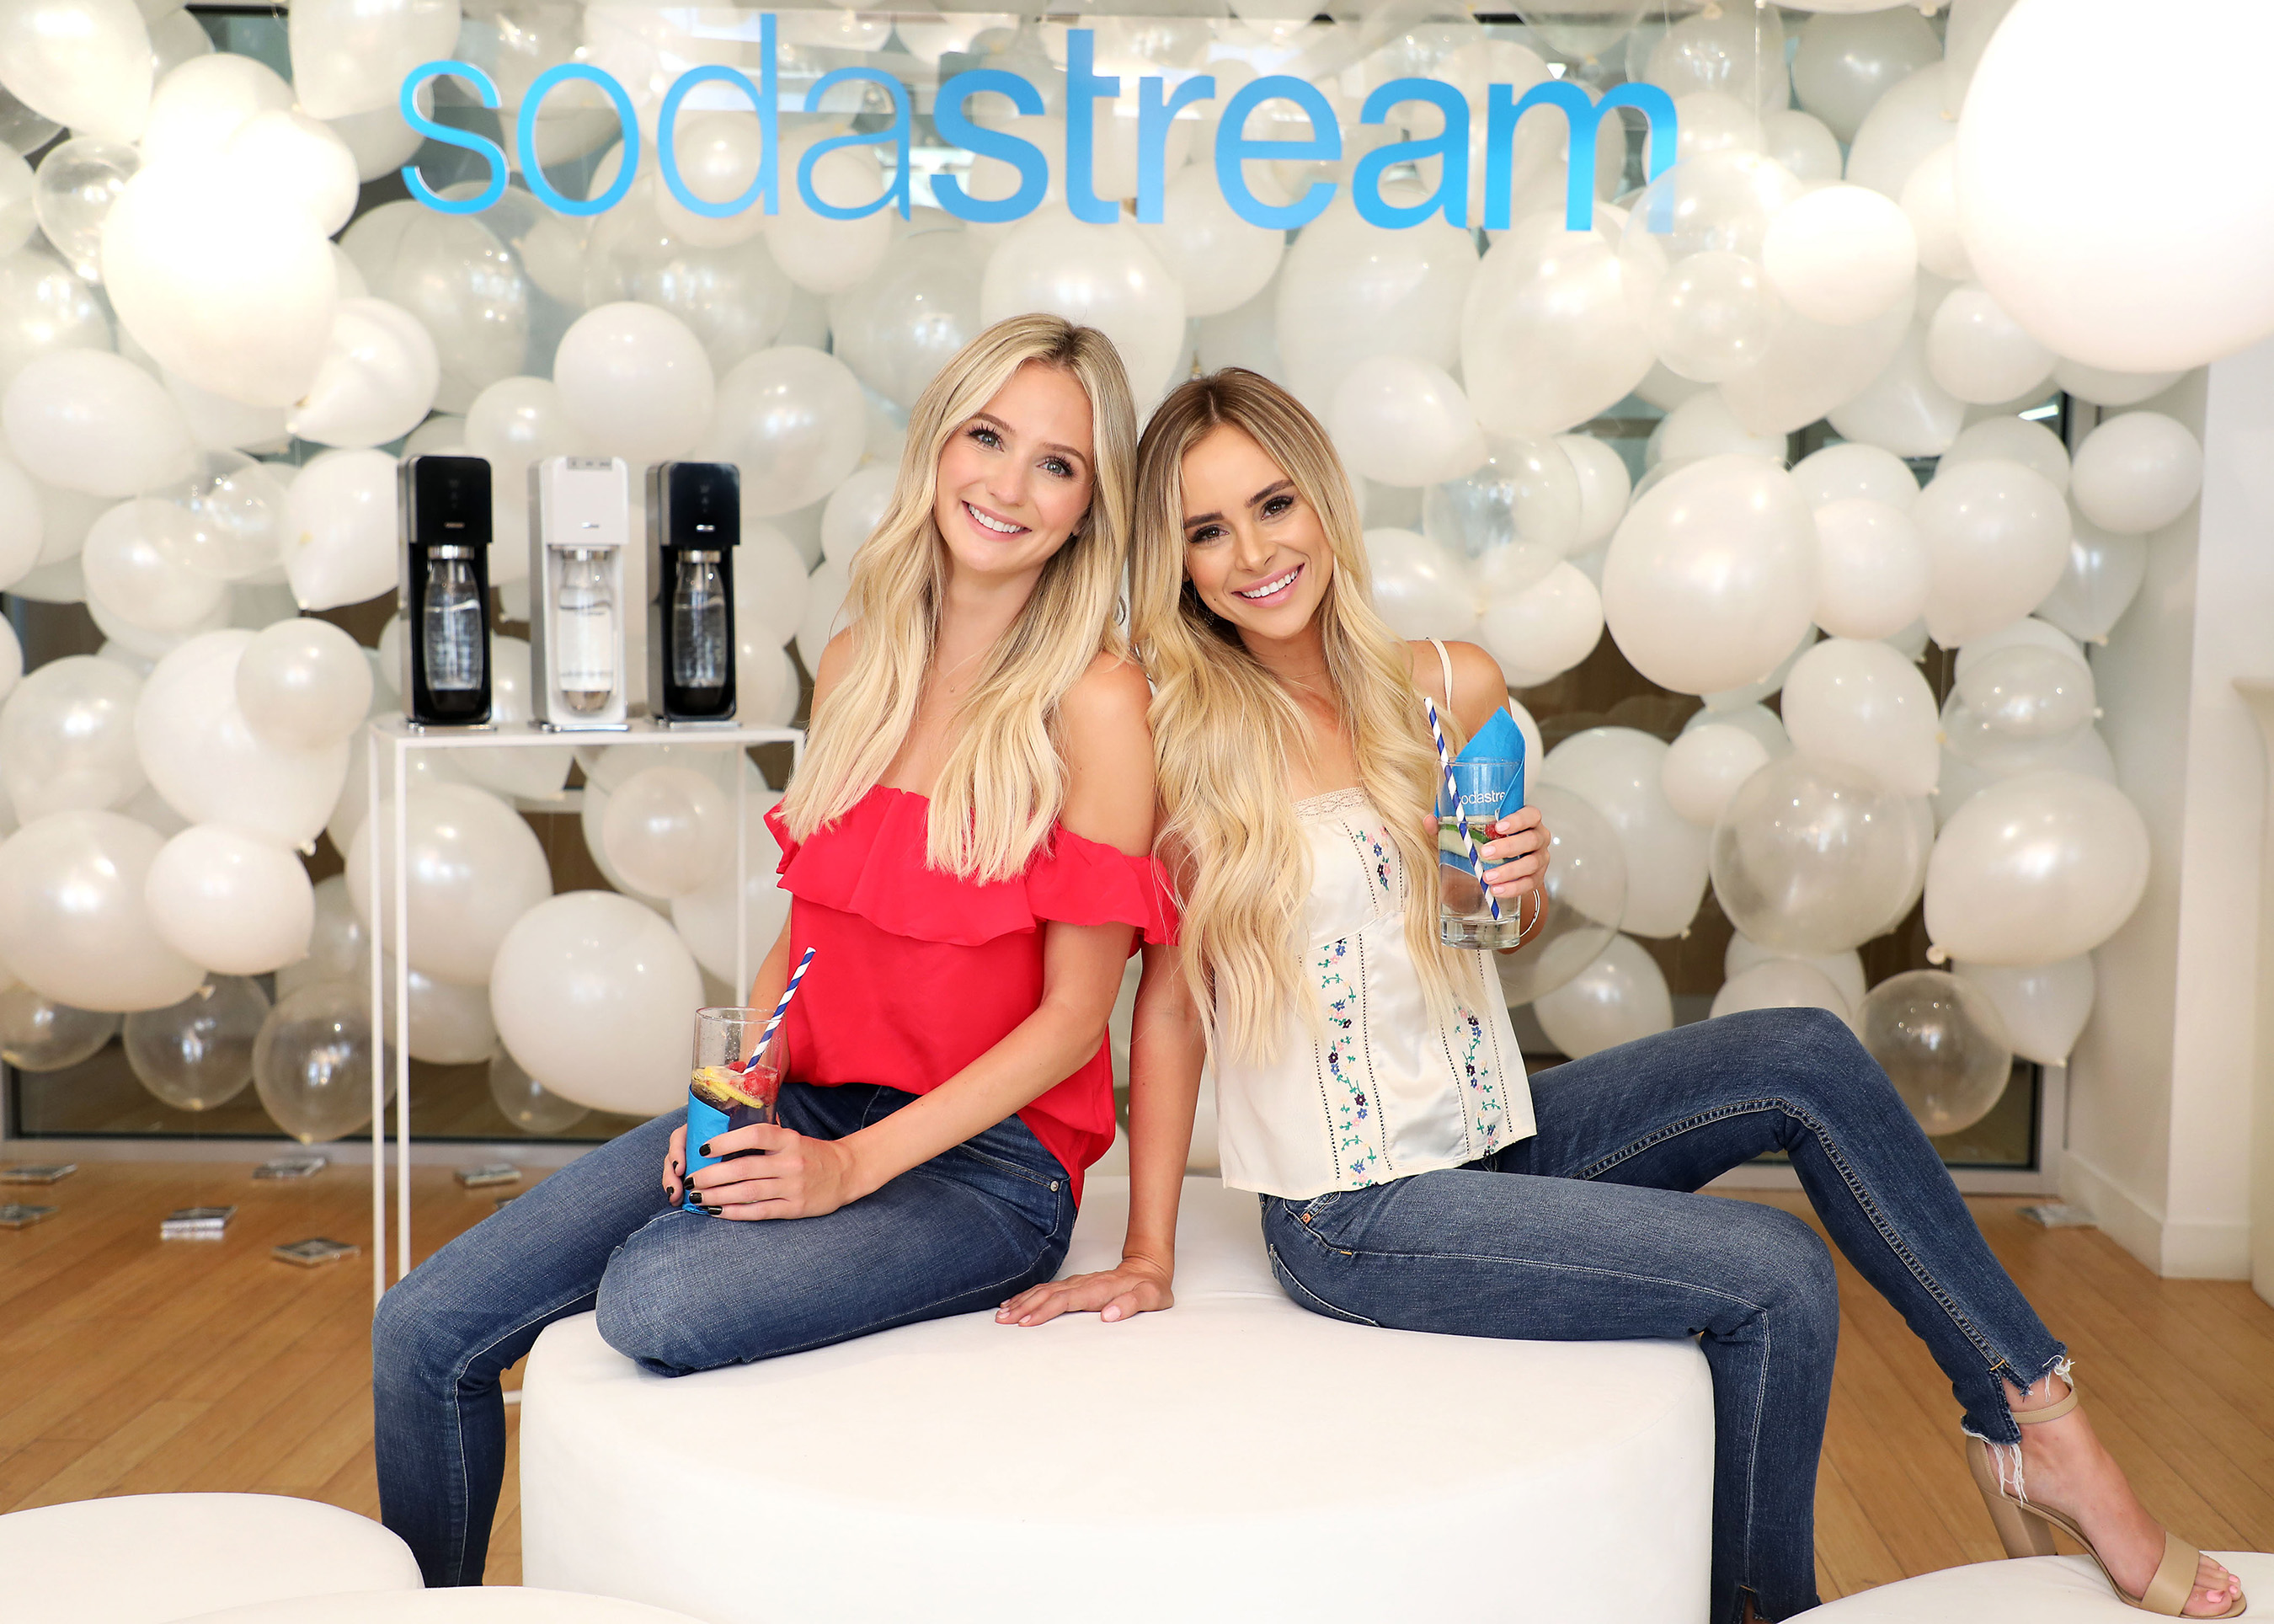 Bachelor stars Amanda and Lauren celebrate hydration with SodaStream